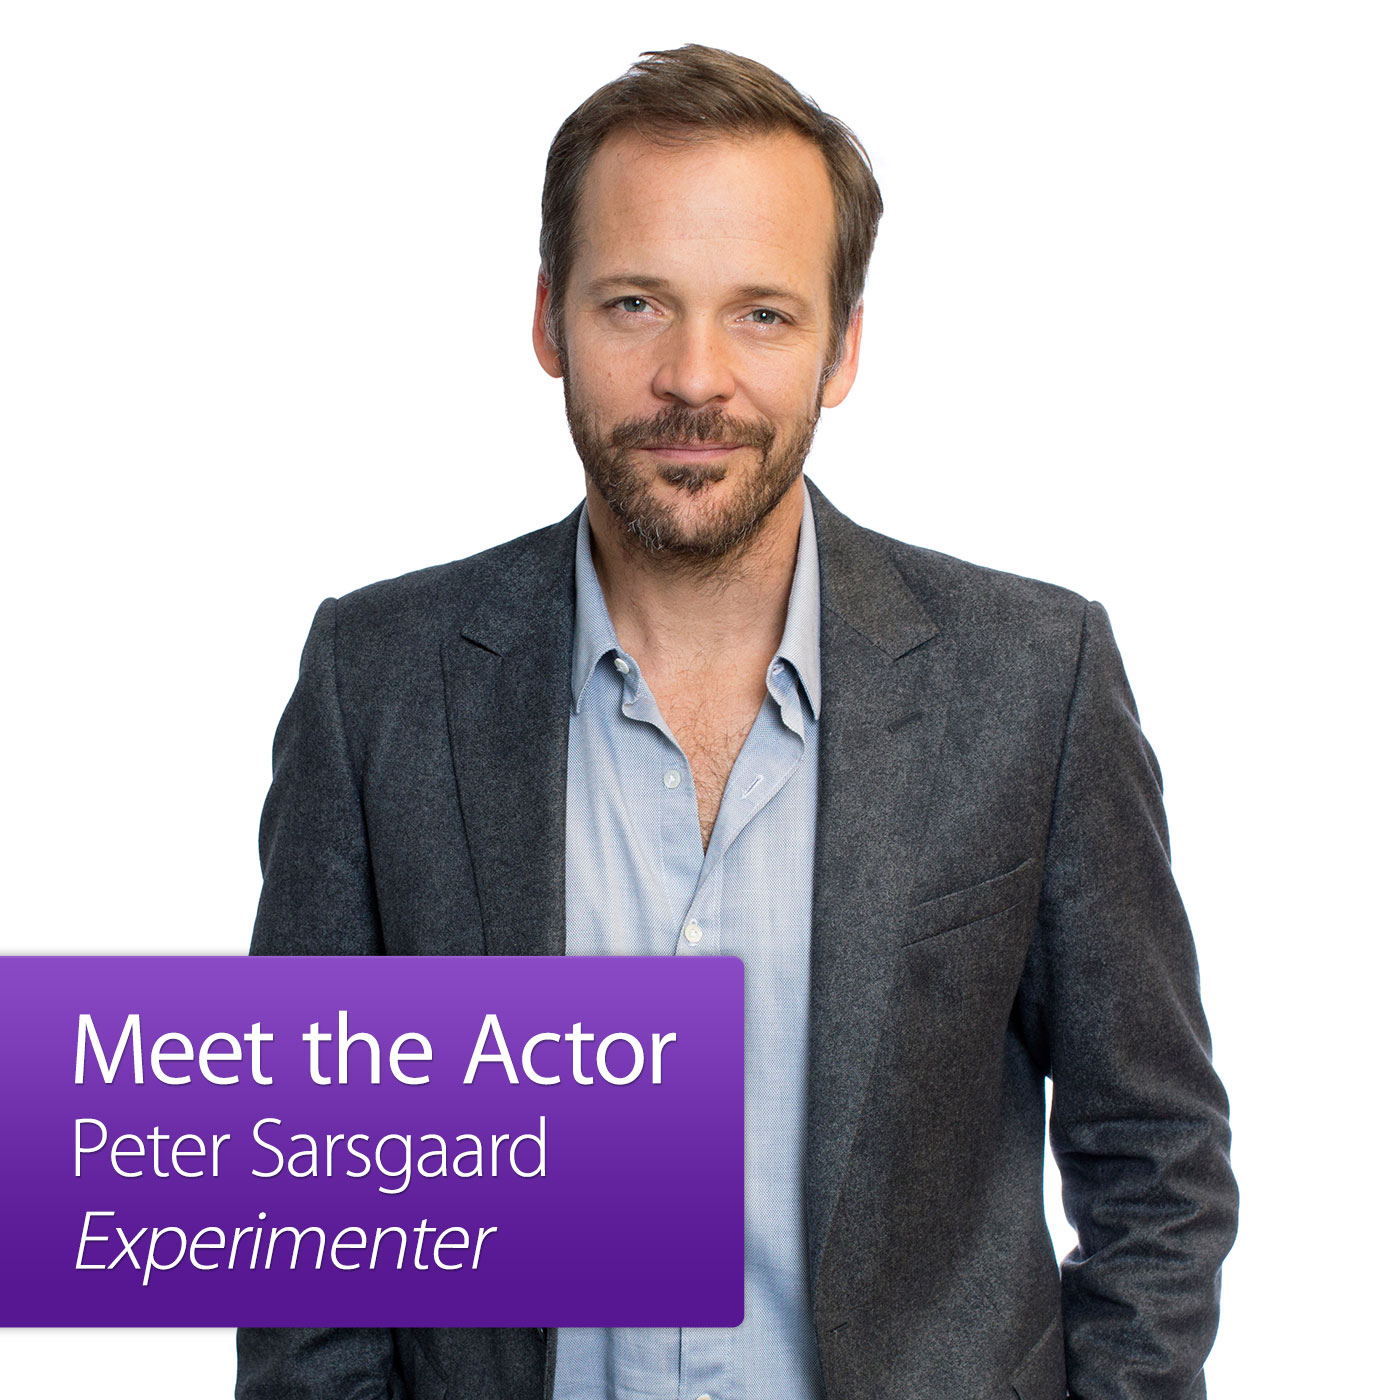 Experimenter: Meet the Filmmaker